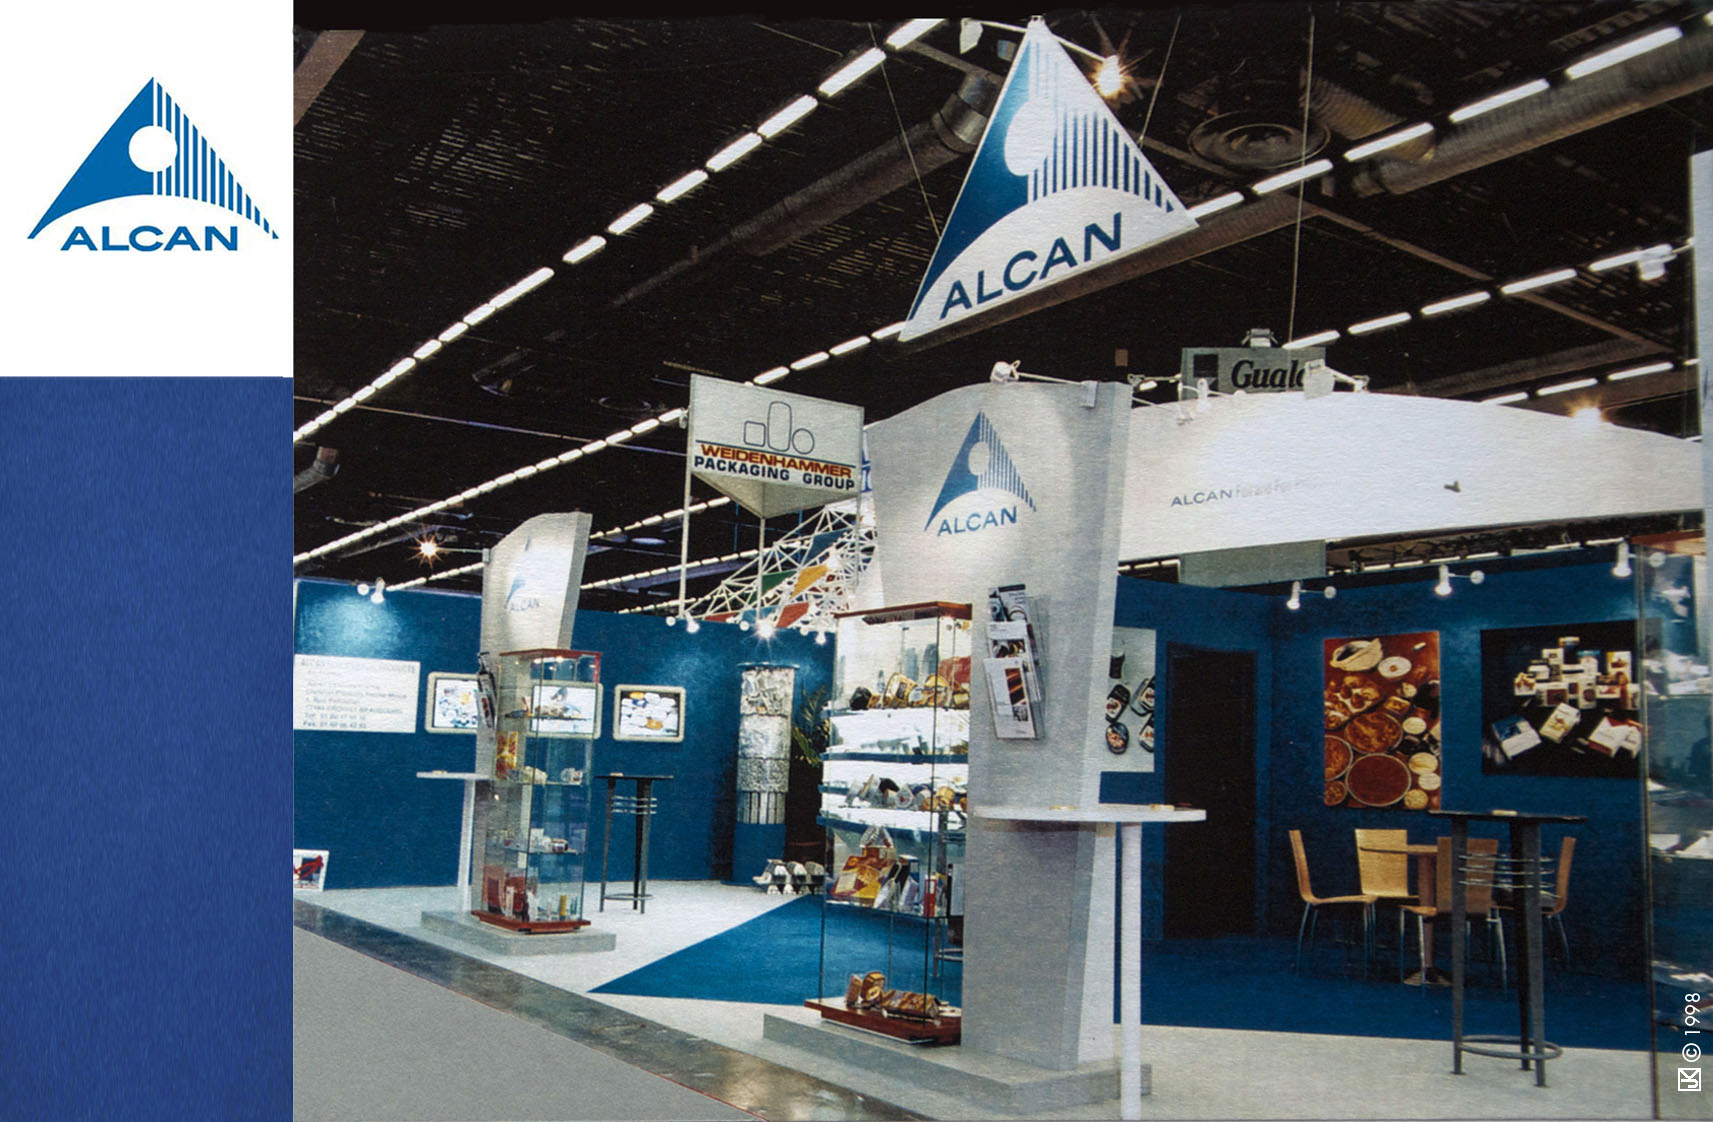 Stand Alcan Salon de l'emballage - Architecture éphémère